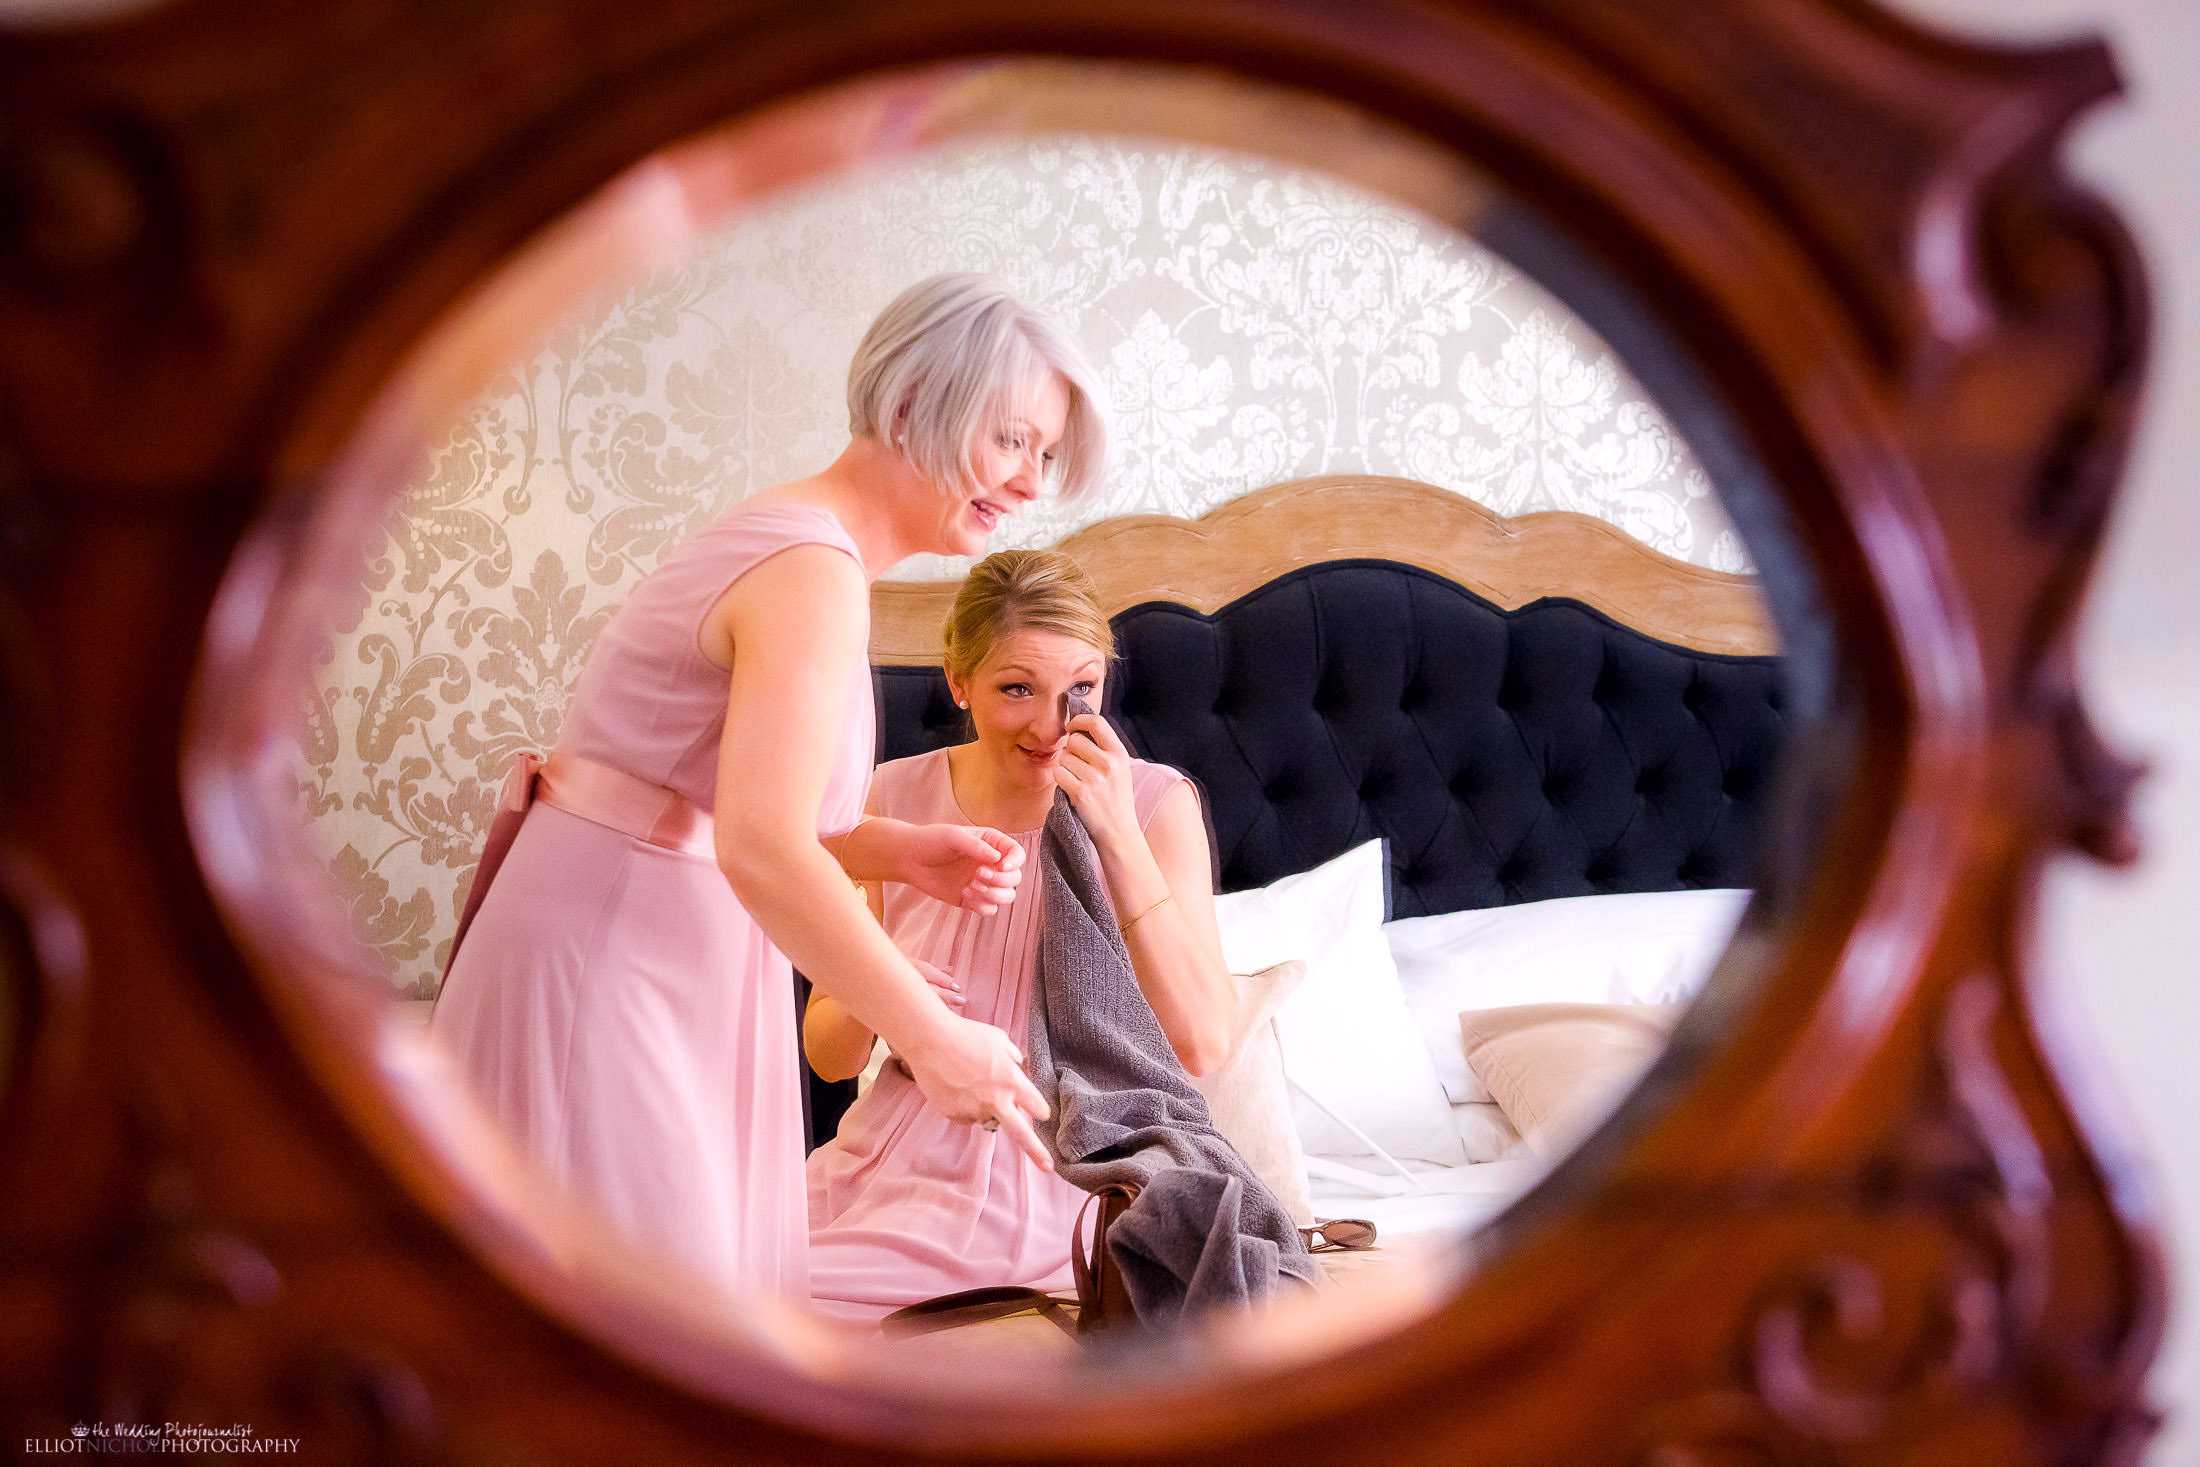 Bridesmaid get emotional after seeing the bride in her wedding dress. Photo by Elliot Nichol Photography.